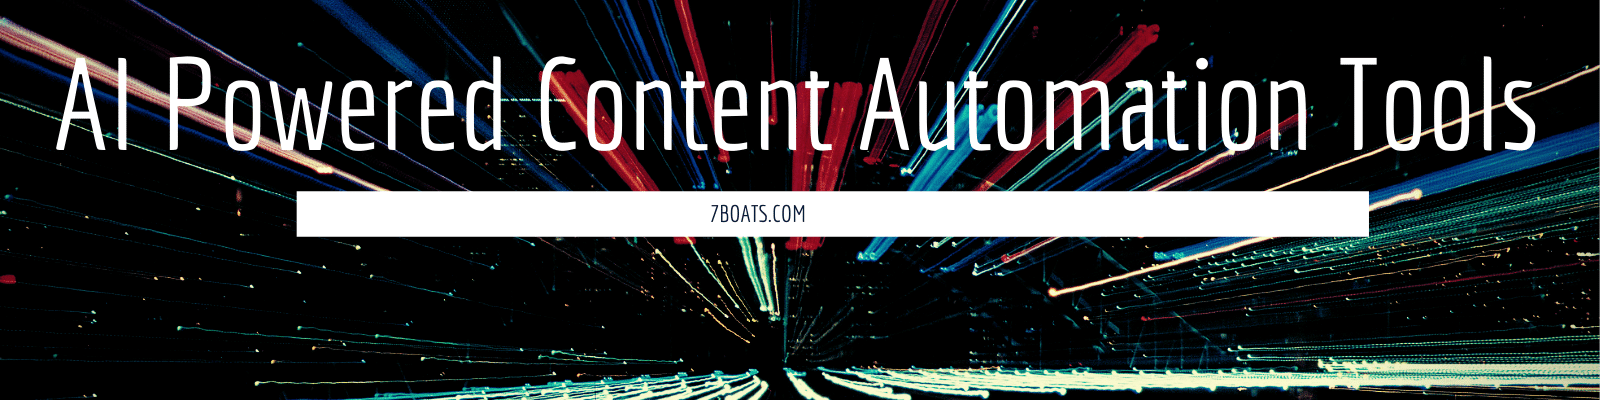 AI Powered Content Automation Tools